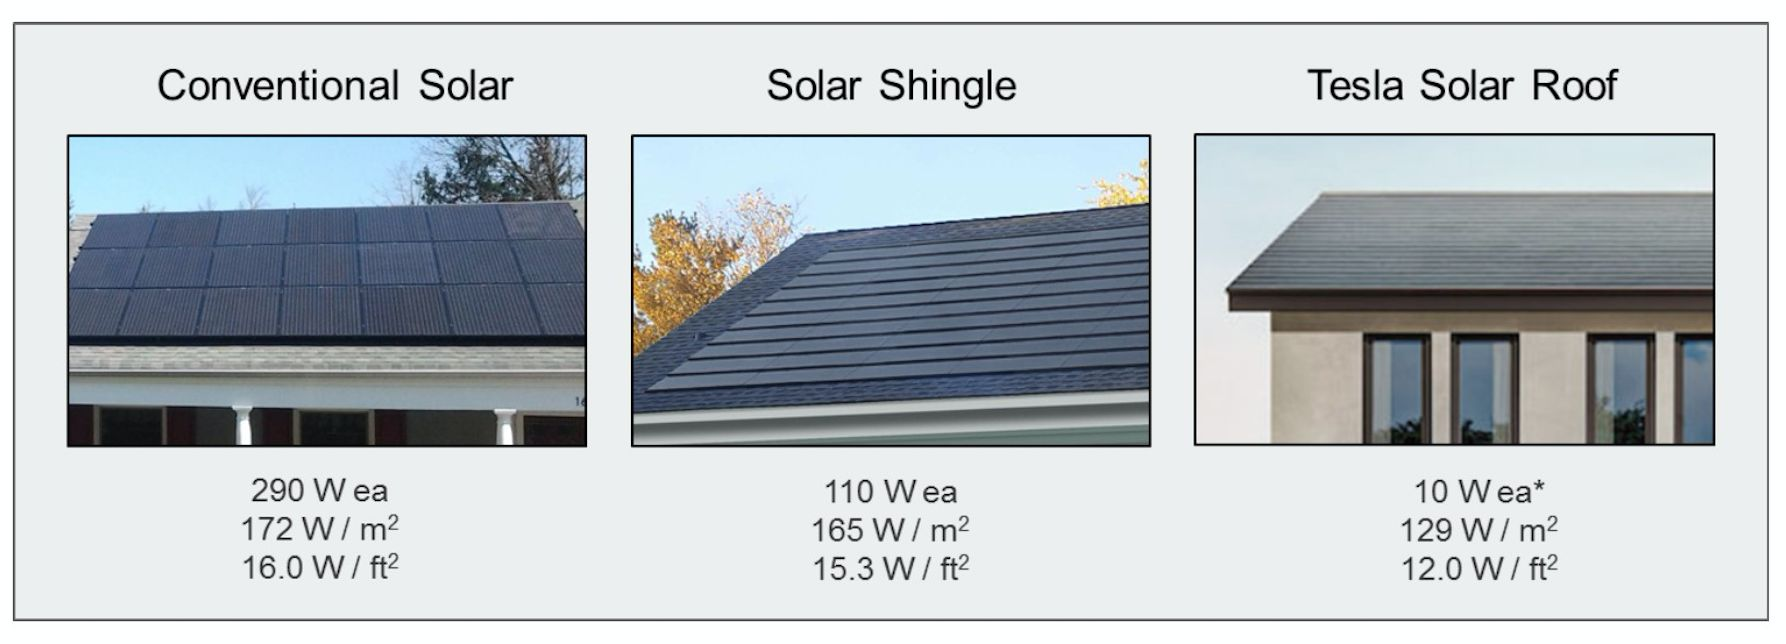 Solar Roof Cost >> Will Tesla S Solar Roof Change The Residential Solar Market